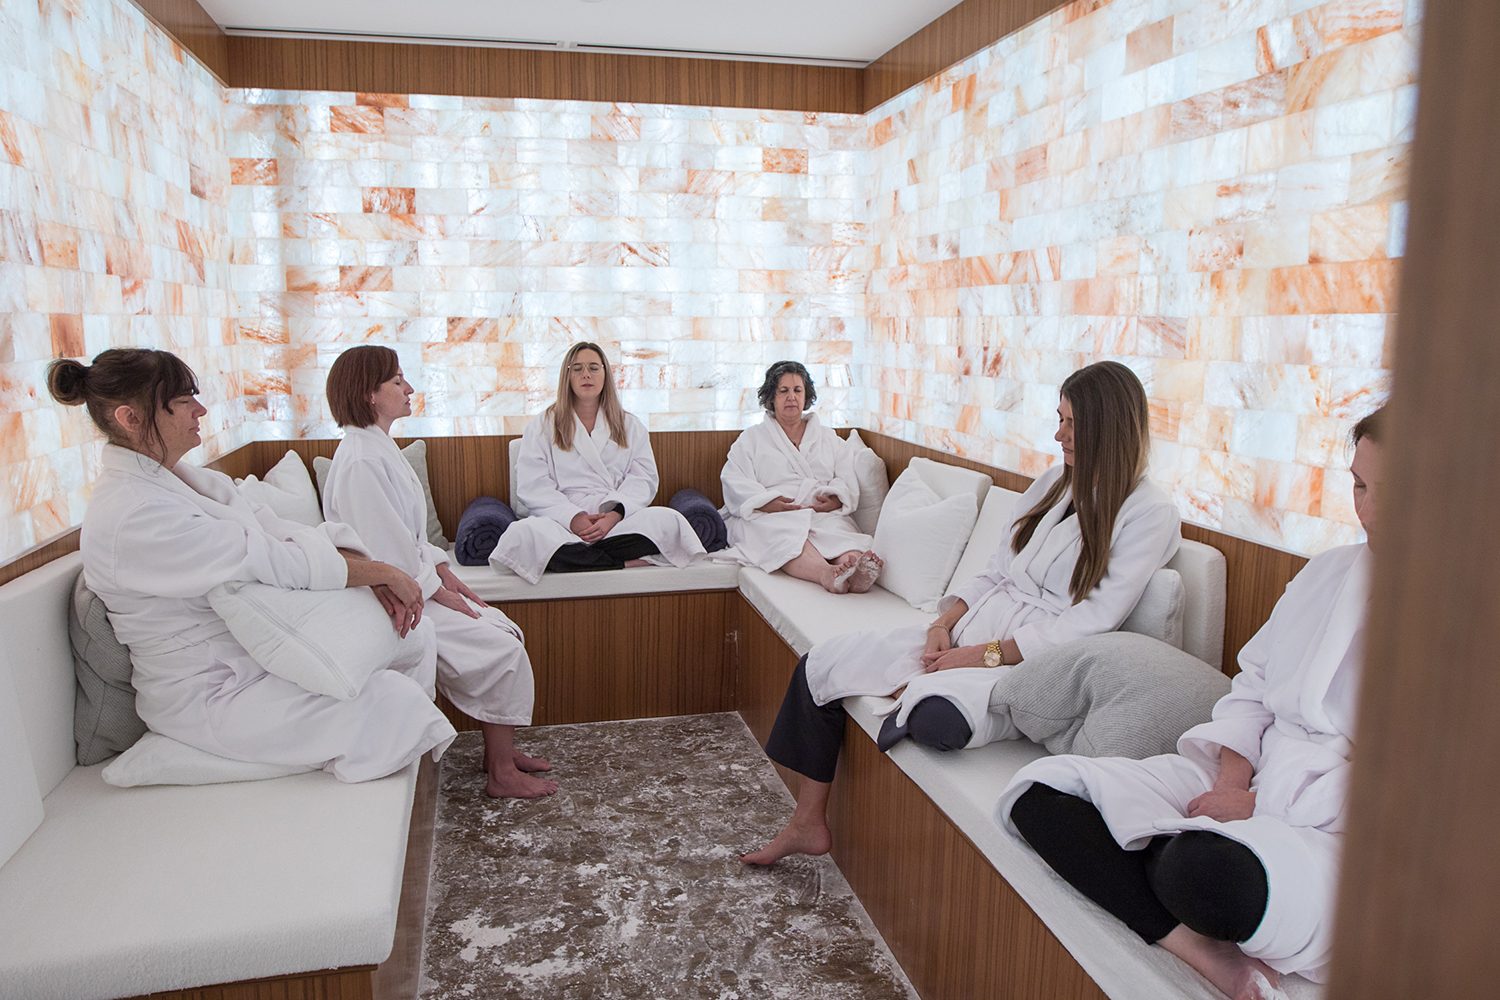 Facilities include a co-ed ionized Himalayan salt therapy room.